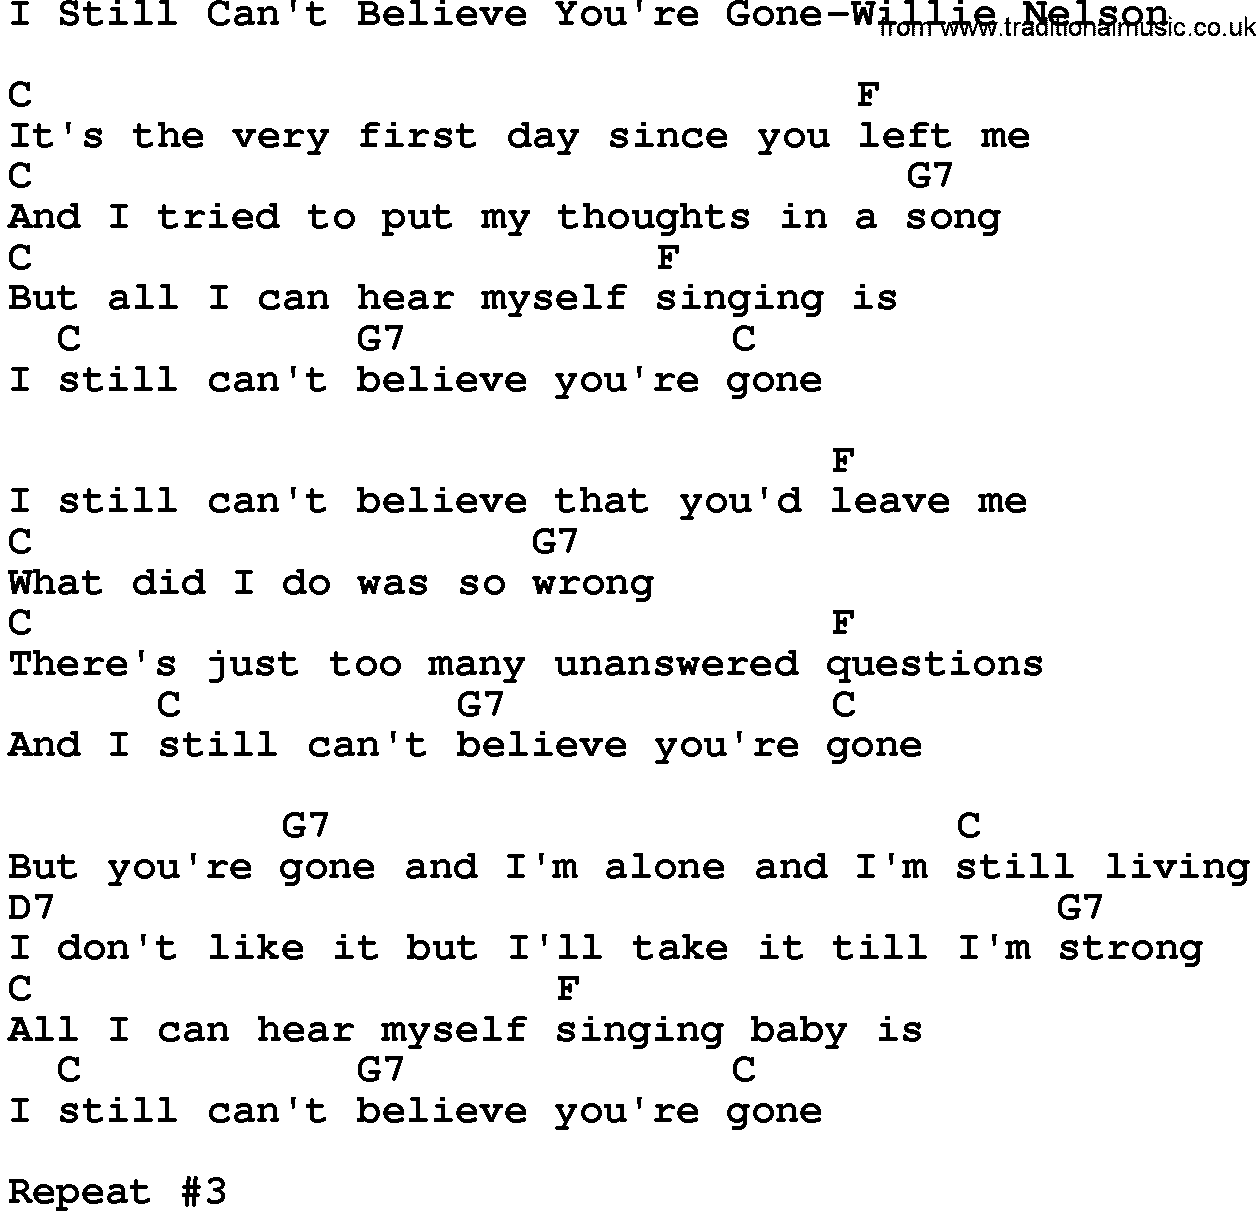 Country Musici Still Cant Believe Youre Gone Willie Nelson Lyrics